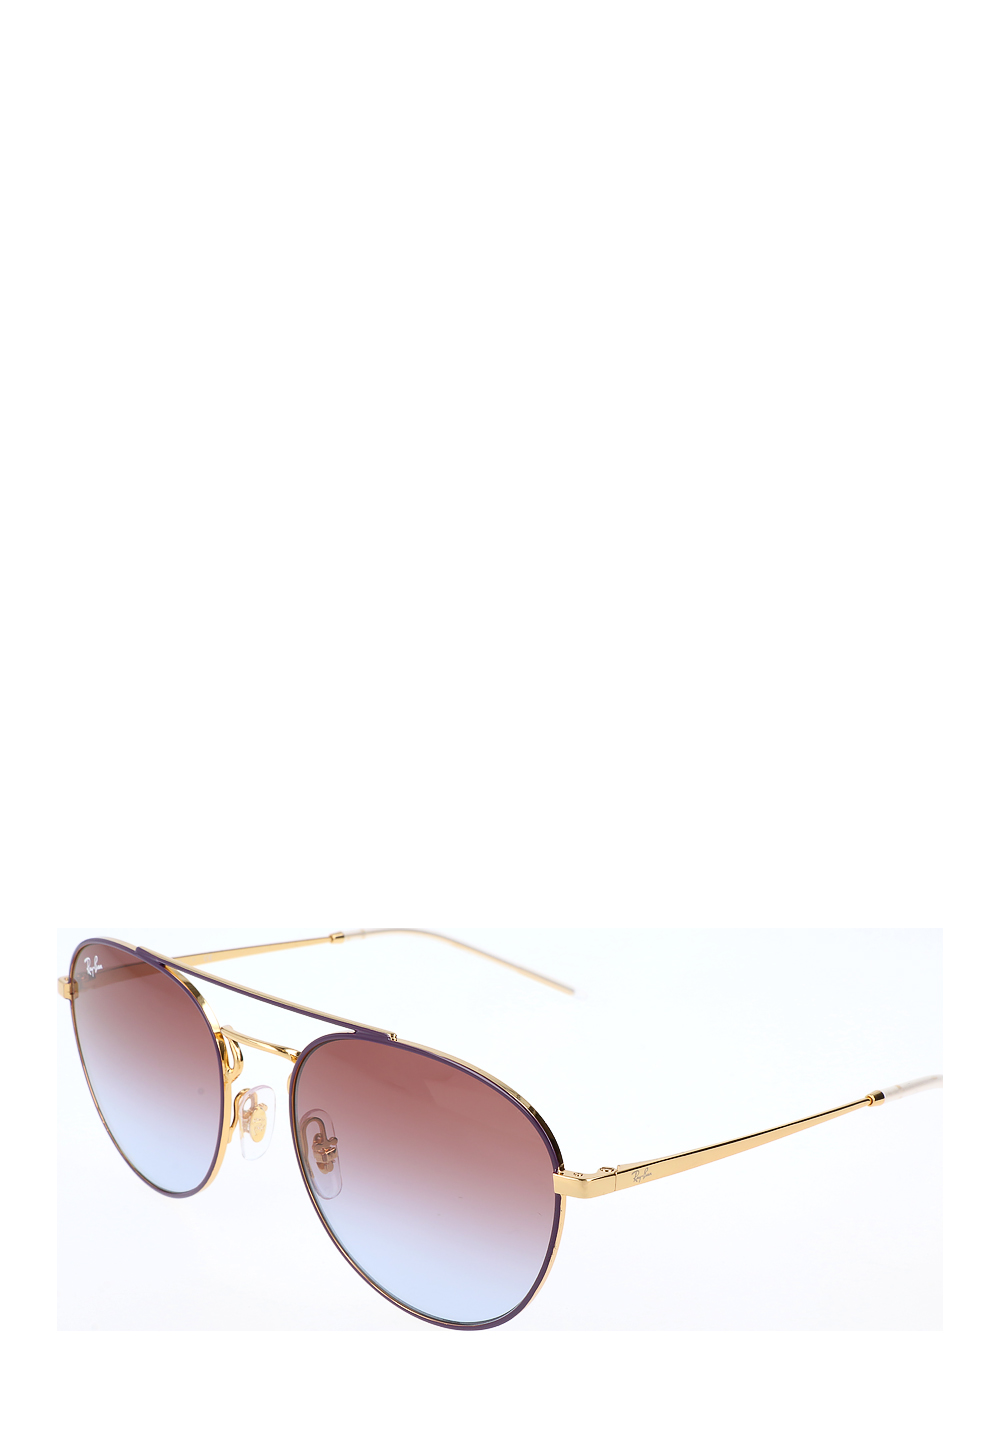 Sonnenbrille Rb3589, UV 400, golden/violett